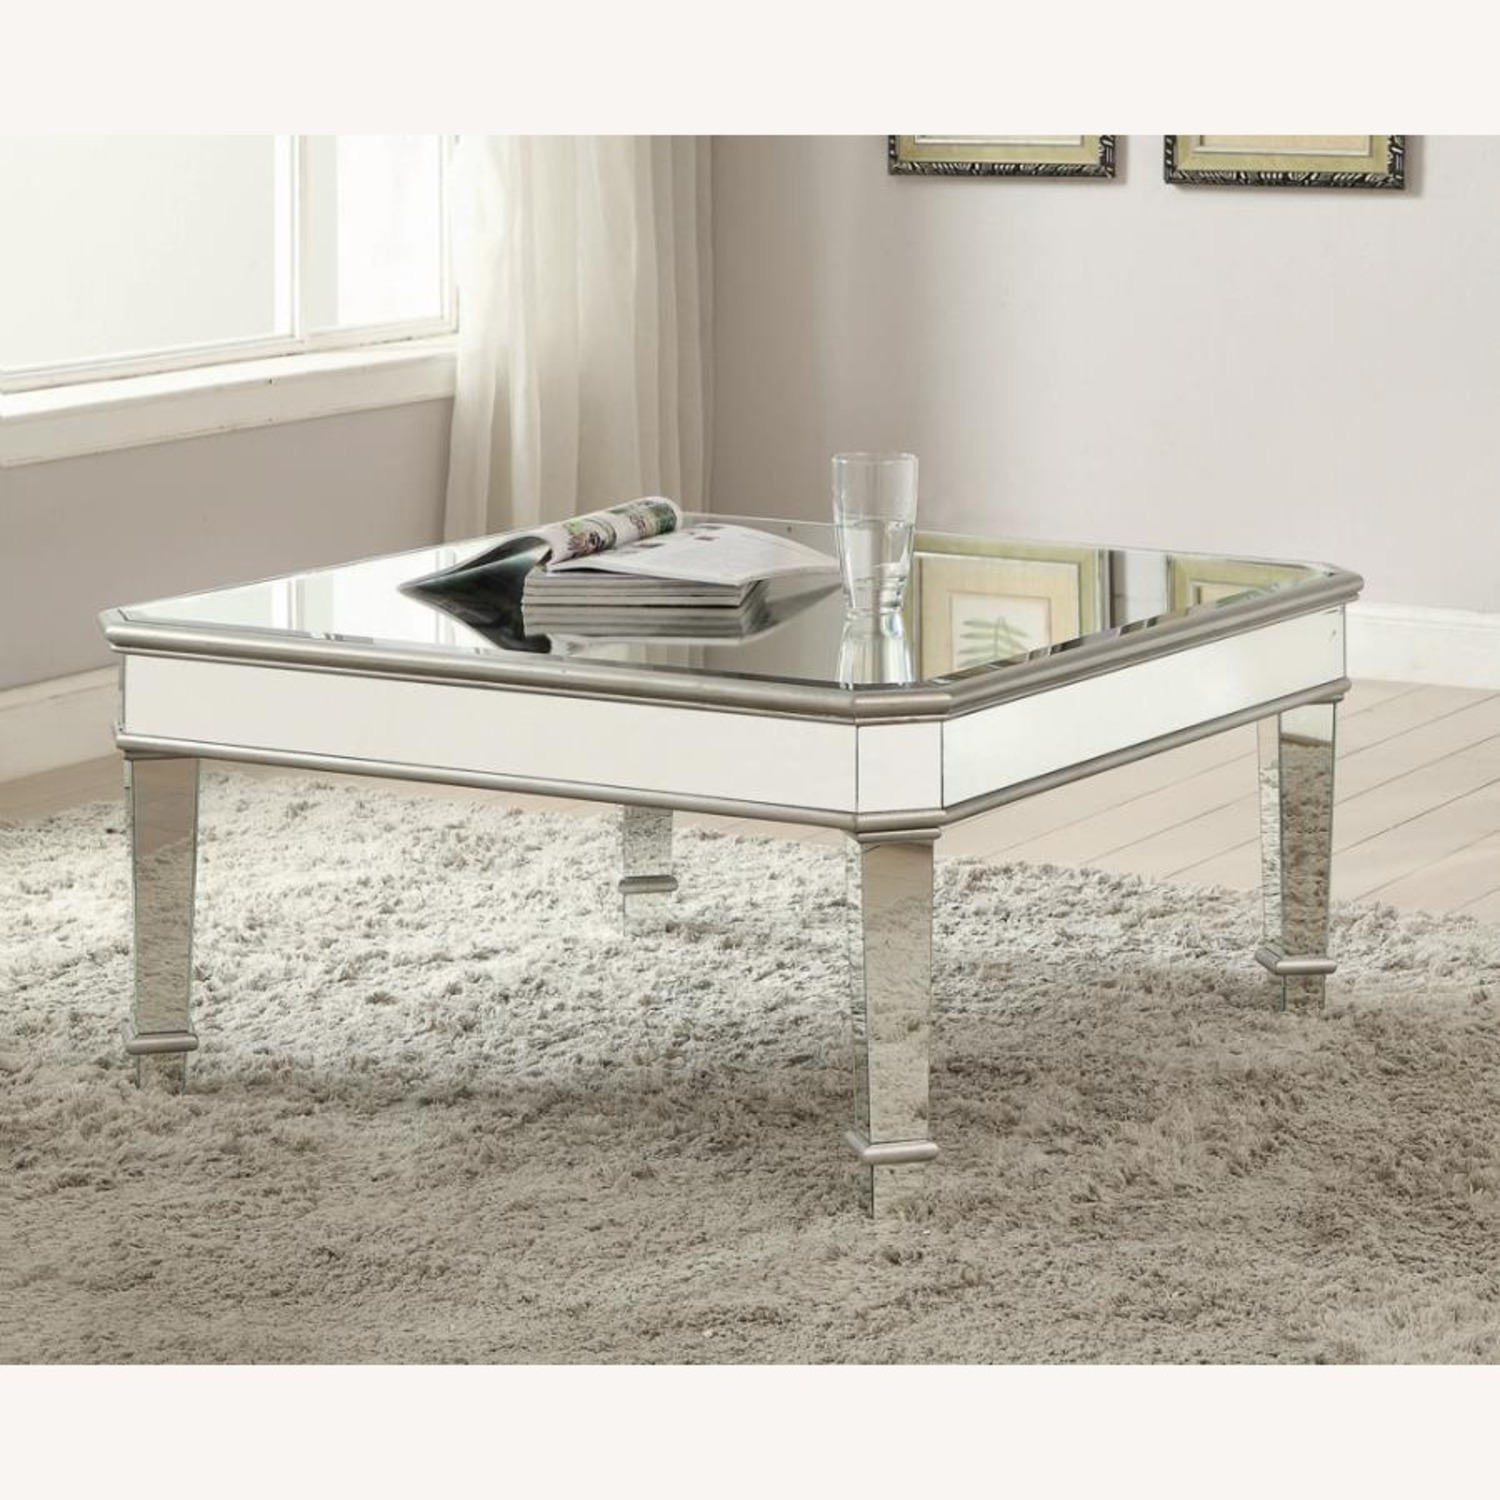 Coffee Table In Silver W/ Mirror Lined Surfaces - image-1